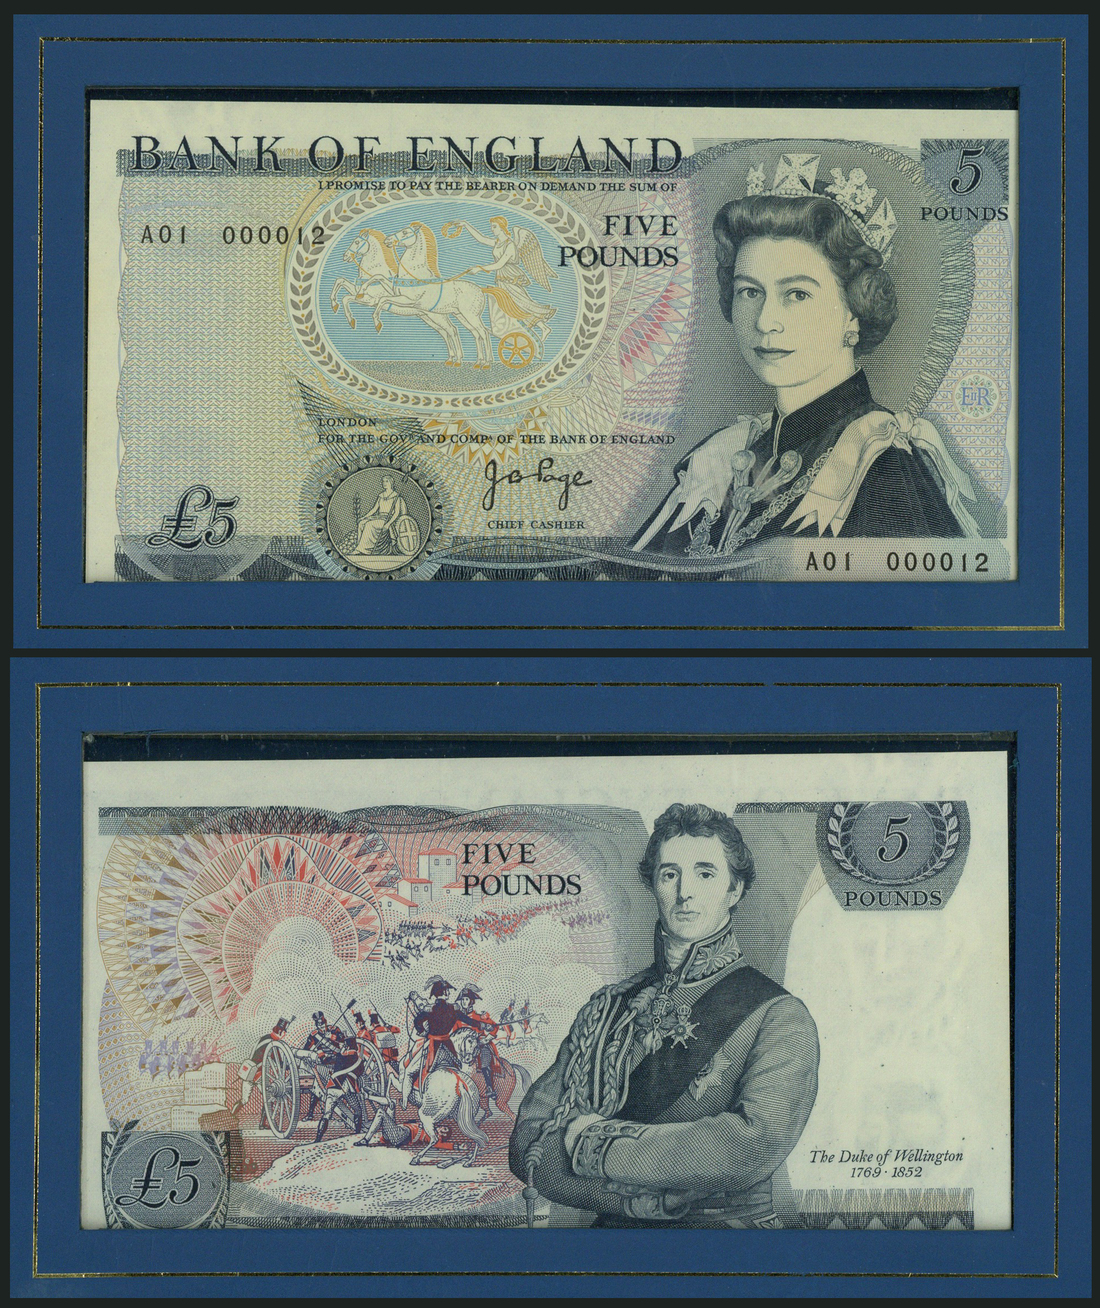 Lot 2922 - Bank of England, J B Page, £5, ND (1979), serial number A01 000012, (EPM B332),